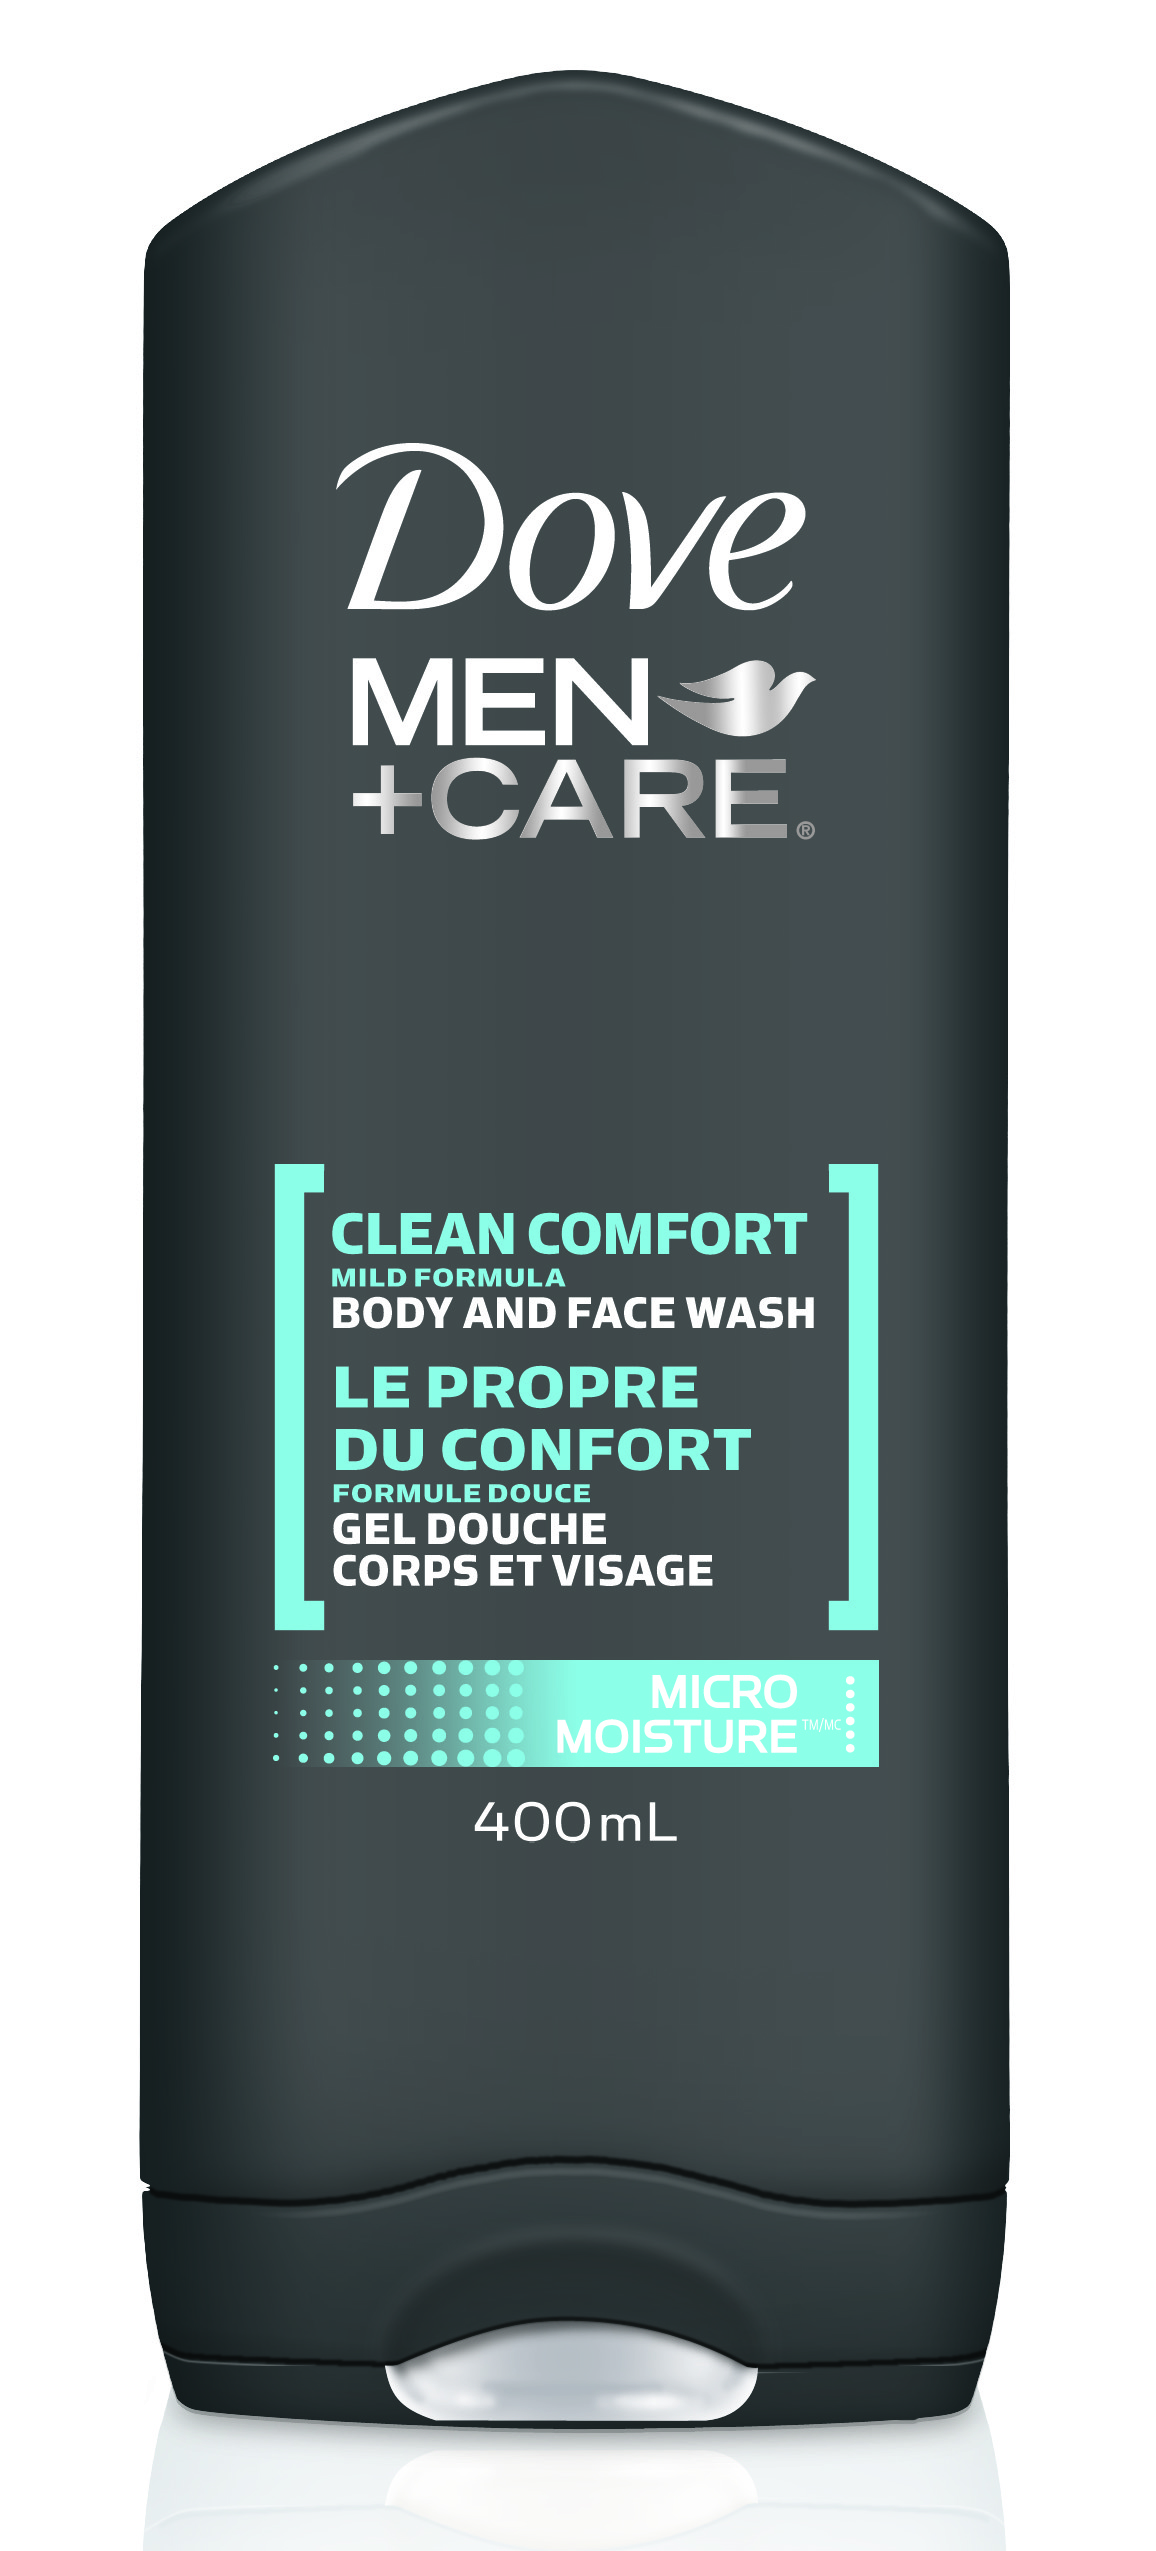 Dove Men+Care Clean Comfort Micro Moisture Body & Face Wash, $5.99. Available at drugstores.   Retire your soap on a rope in favour of this gel wash that gets you squeaky clean from head-to-toe. Simply suds up the lather leaves skin soft and hydrated with zero residue.